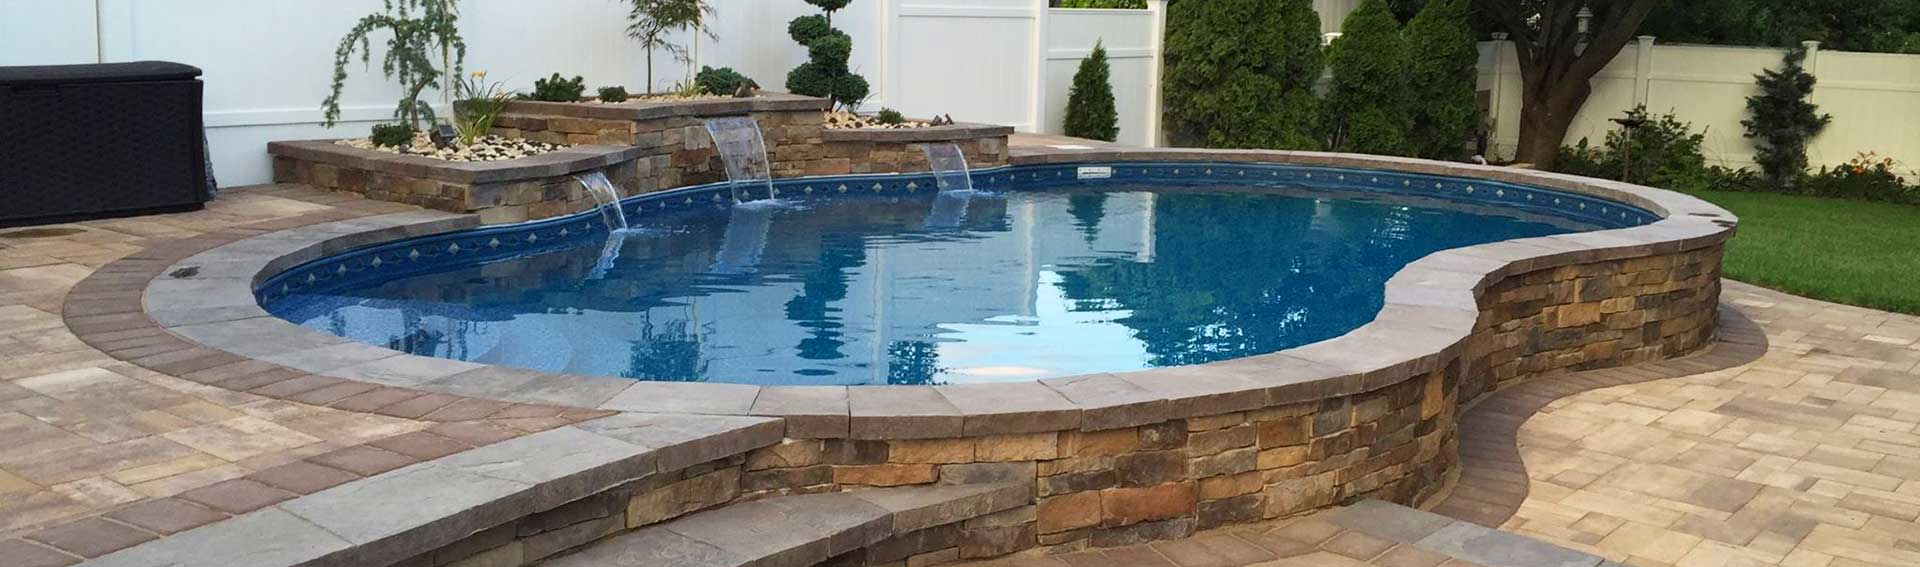 Aquacraft Pools Danvers above ground radiant pool